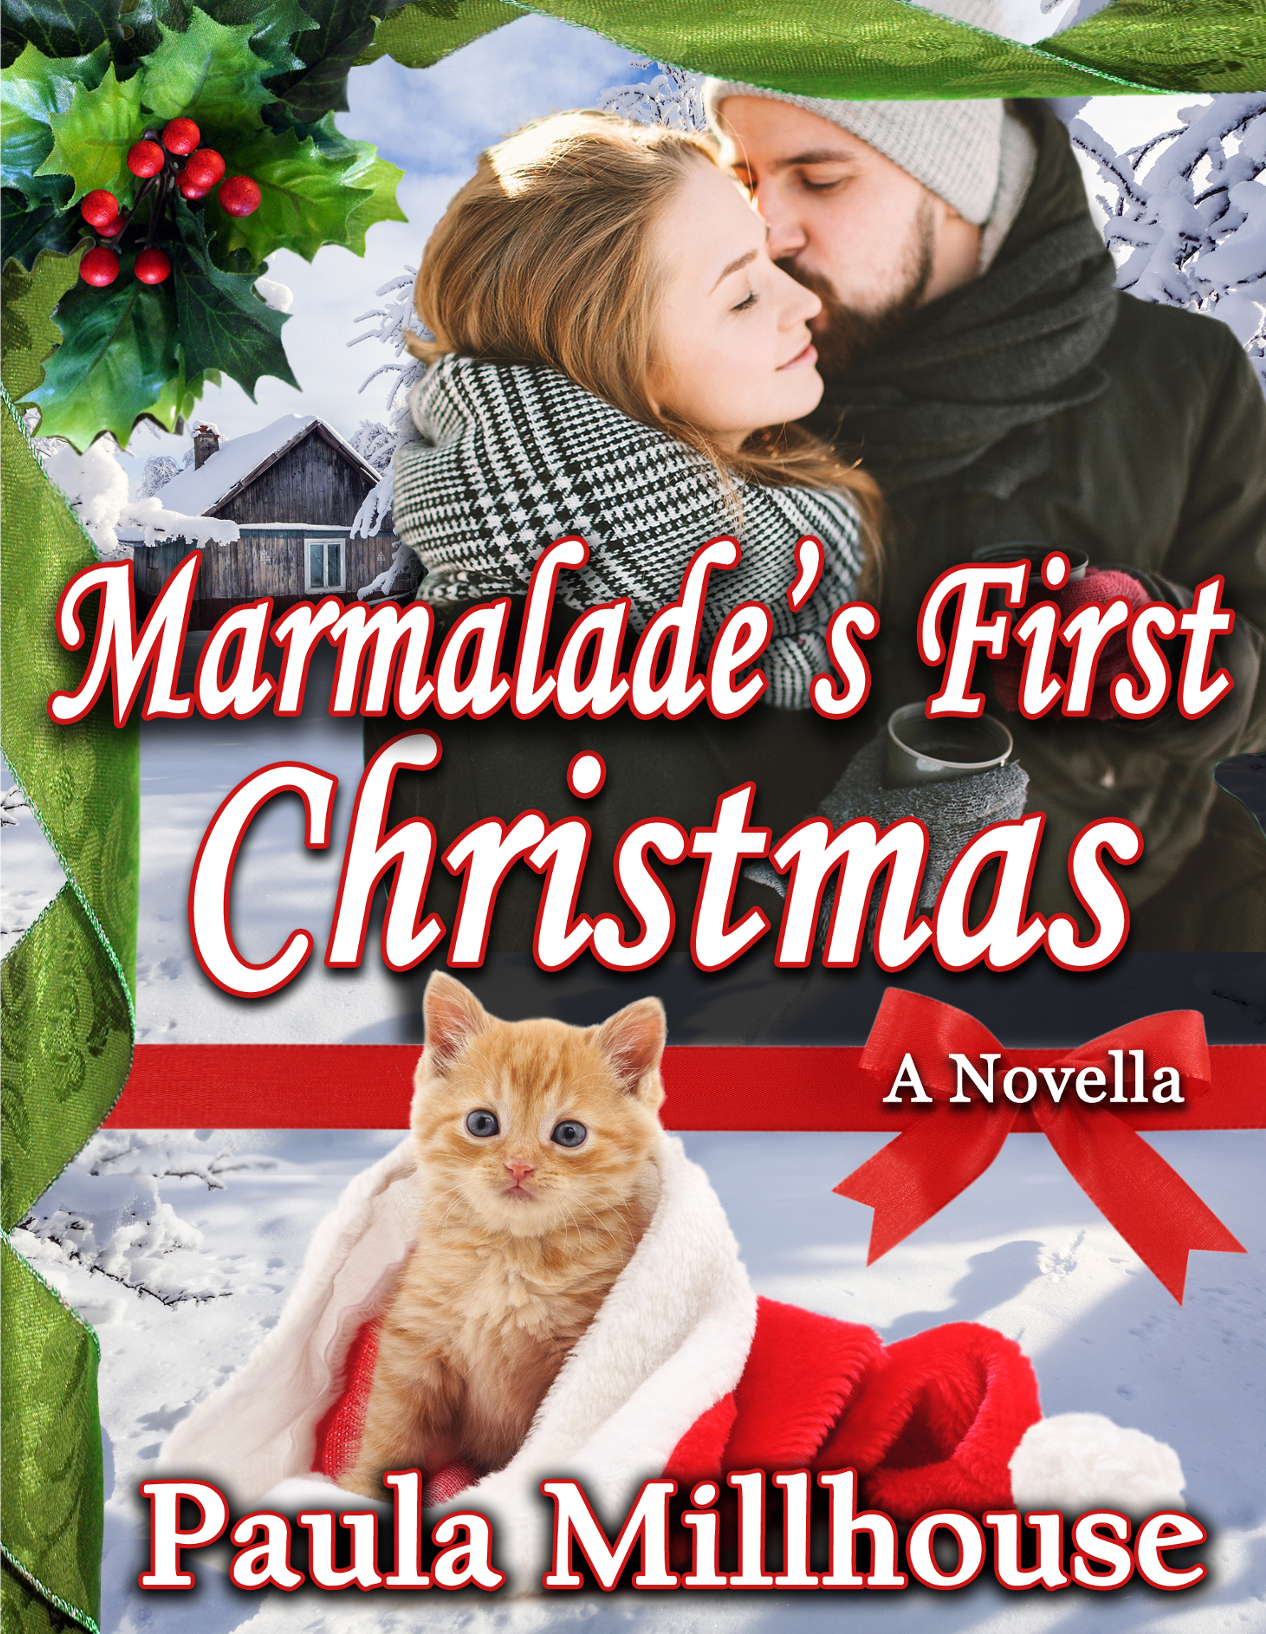 Author Paula Millhouse, Marmalade's First Christmas, Contemporary Romance, Holidays, Kitten, Love, season, giving, hot chocolate recipe